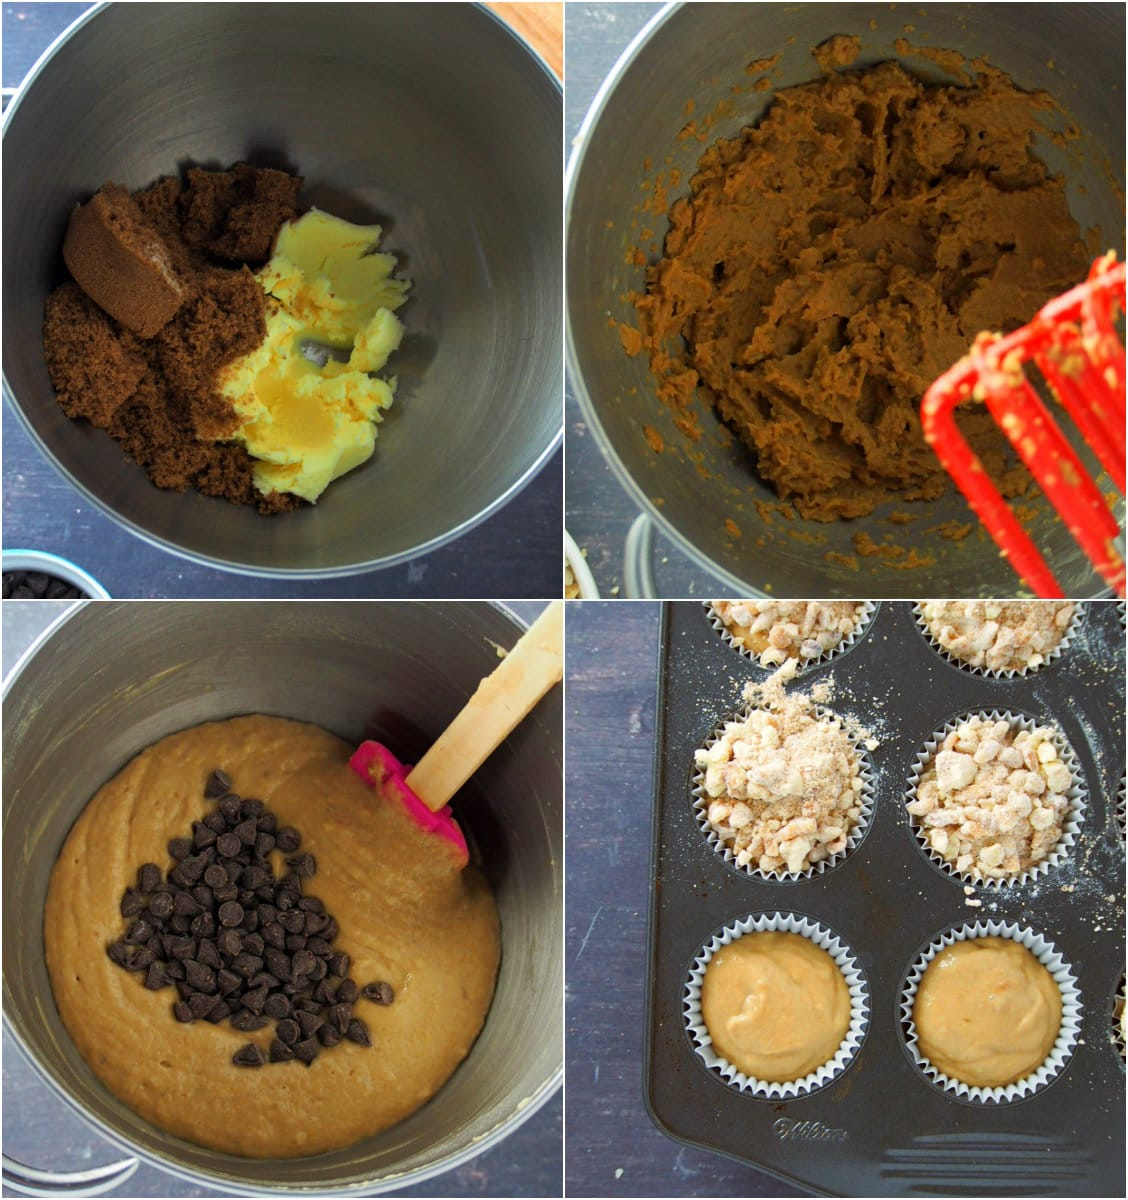 A photo collage showing how to mix the banana bread batter.